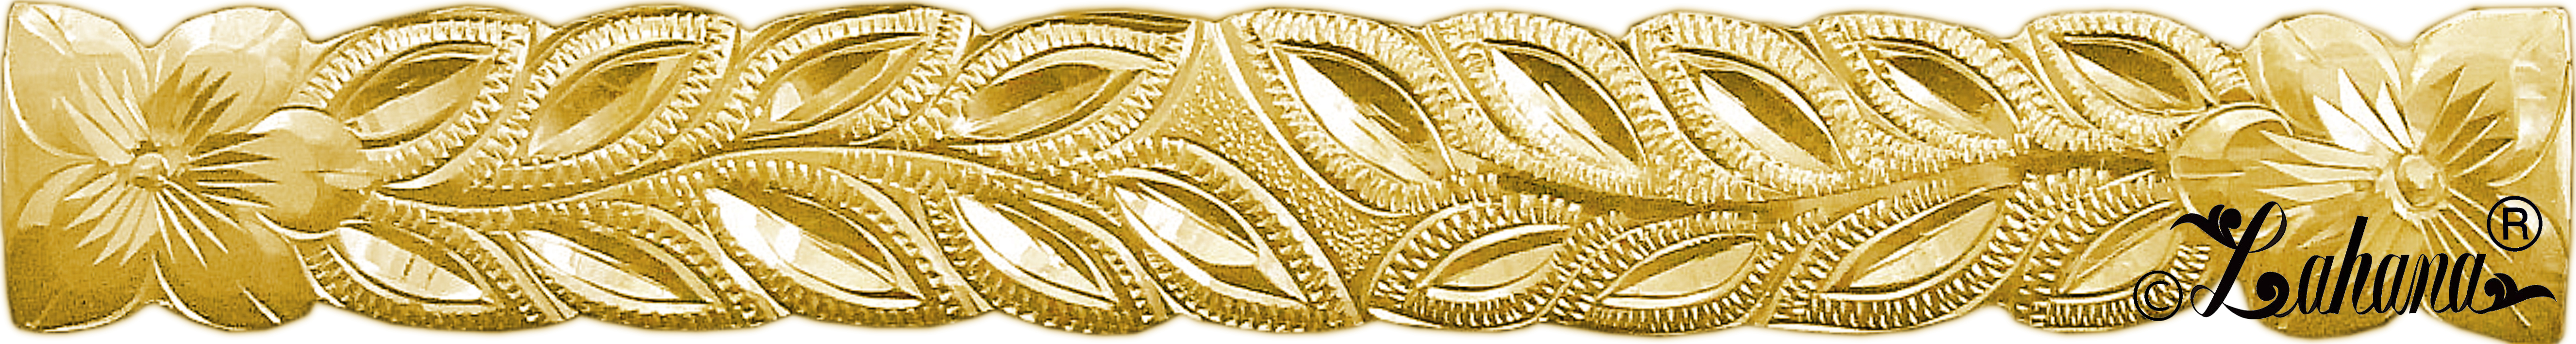 14k-sample-logo-ad-c.jpg